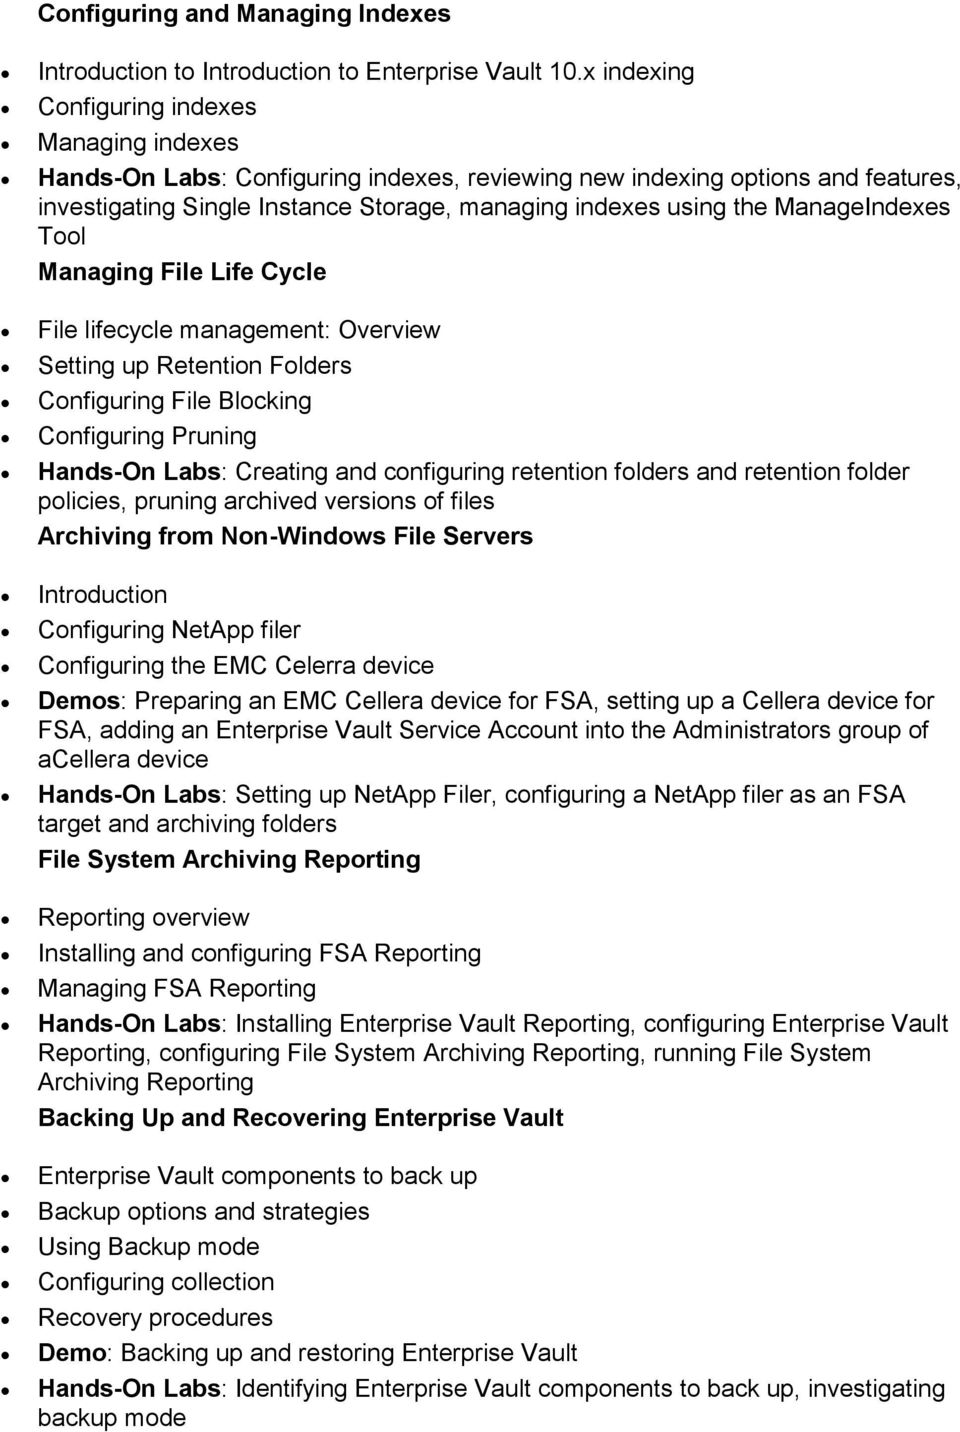 ManageIndexes Tool Managing File Life Cycle File lifecycle management: Overview Setting up Retention Folders Configuring File Blocking Configuring Pruning Hands-On Labs: Creating and configuring